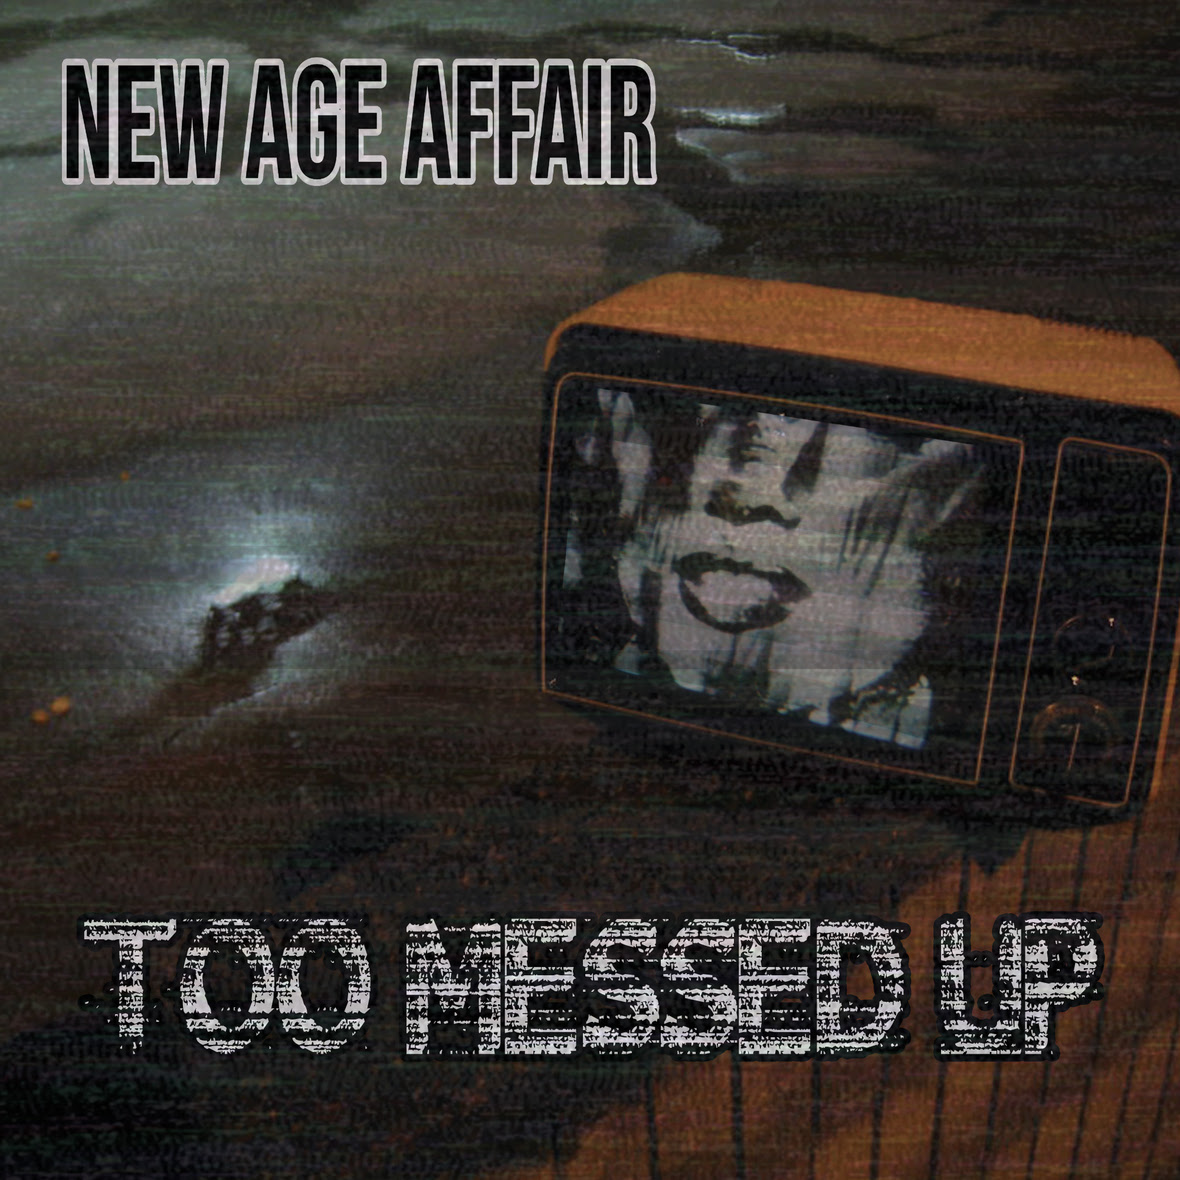 cover art - too messed up